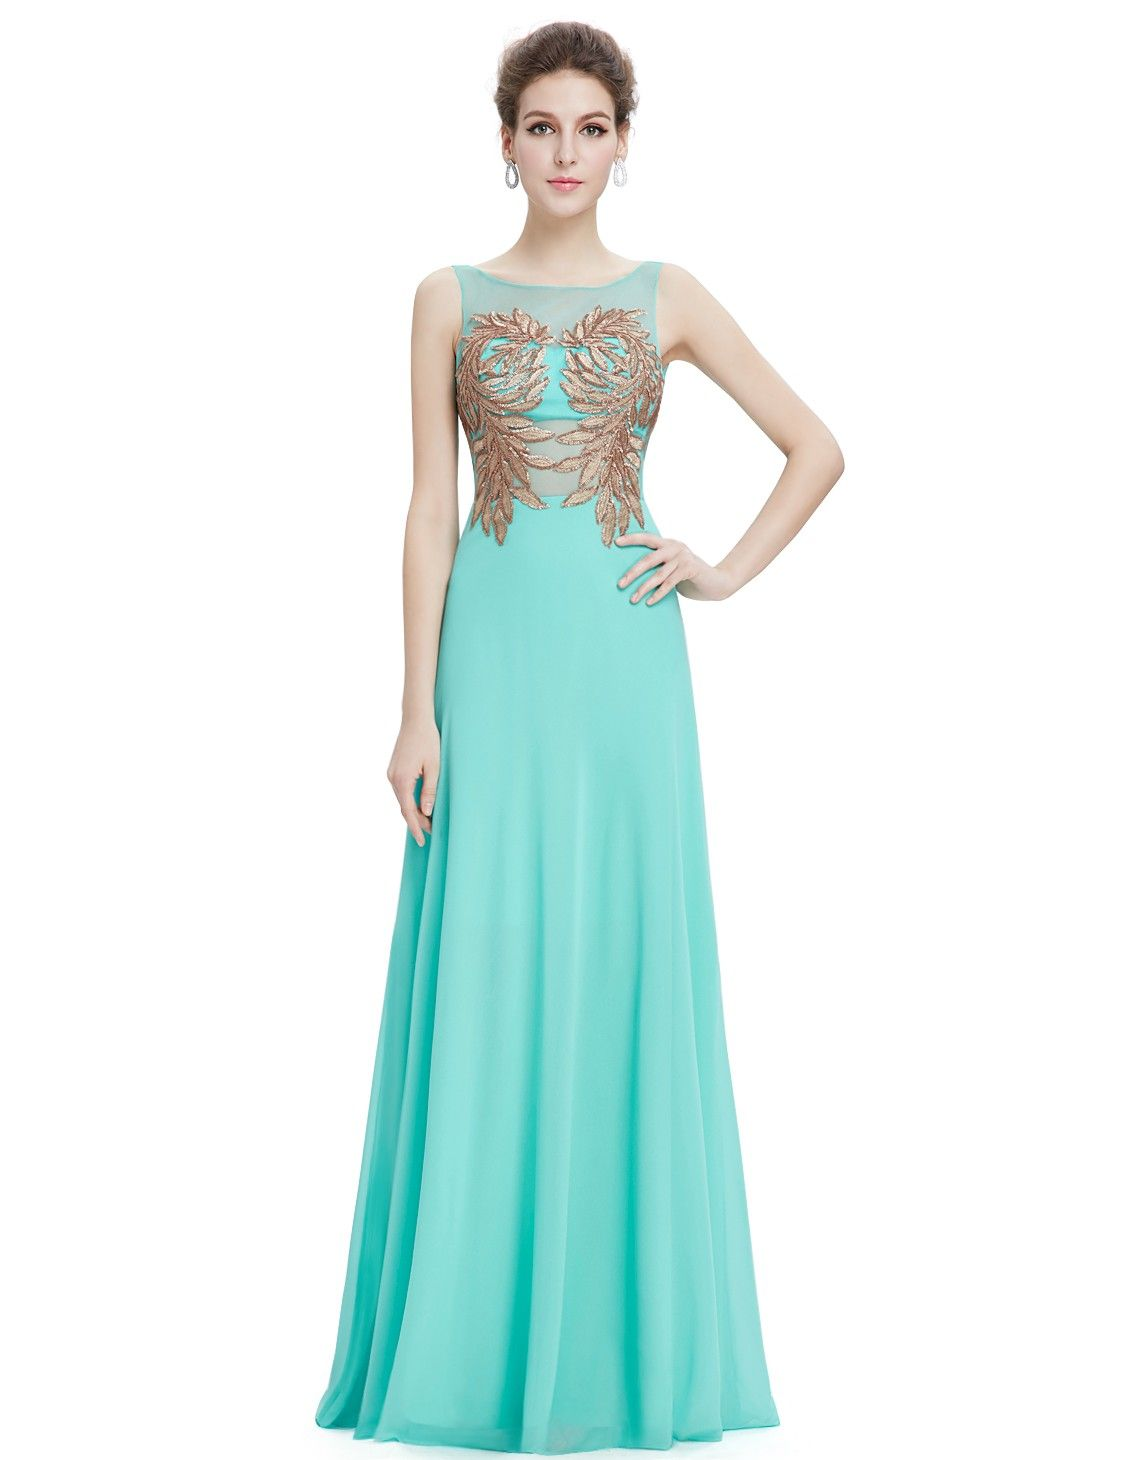 Women's Elegant Round Neck Long Evening Party Dress | Vestidos ...